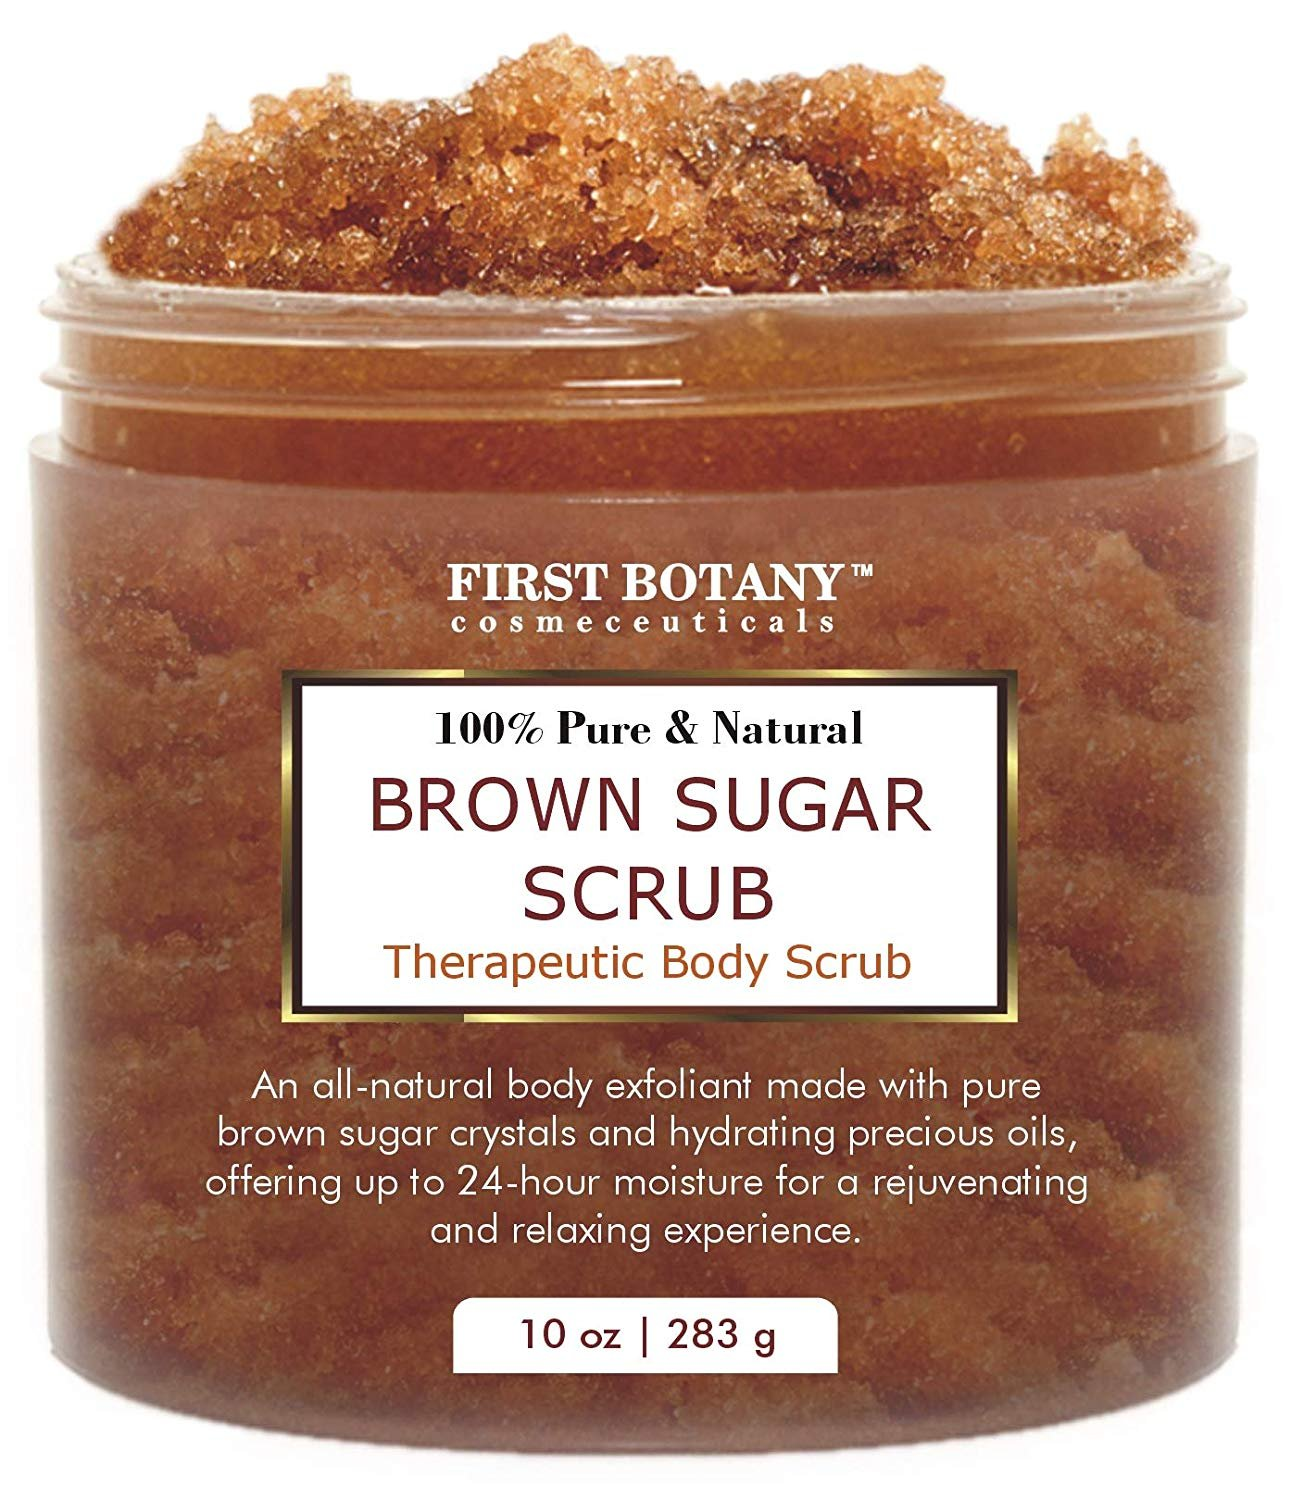 Brown Sugar Natural Body Scrub - 100% Natural Best for Acne, Cellulite Cream/Scrub and Stretch Mark treatment, Moisturizer, Face Scrub 10 oz